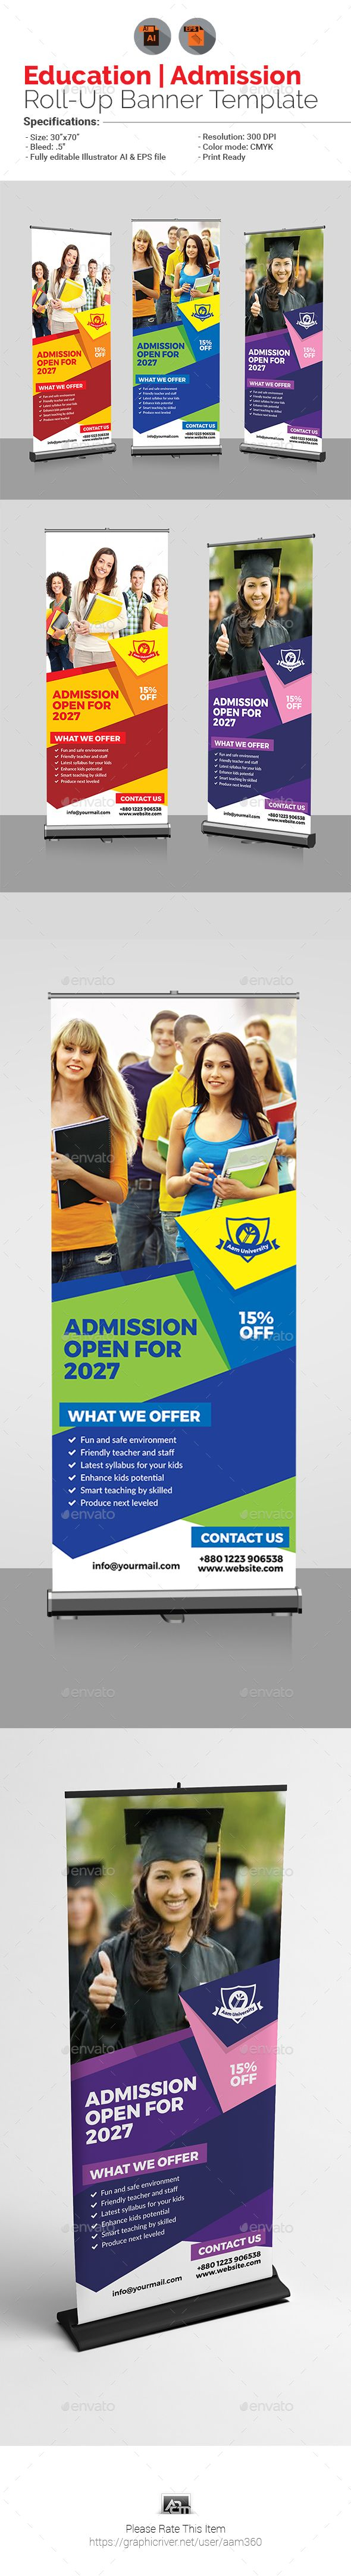 Education - Admission Roll Up Banner Template Vector EPS, AI Illustrator